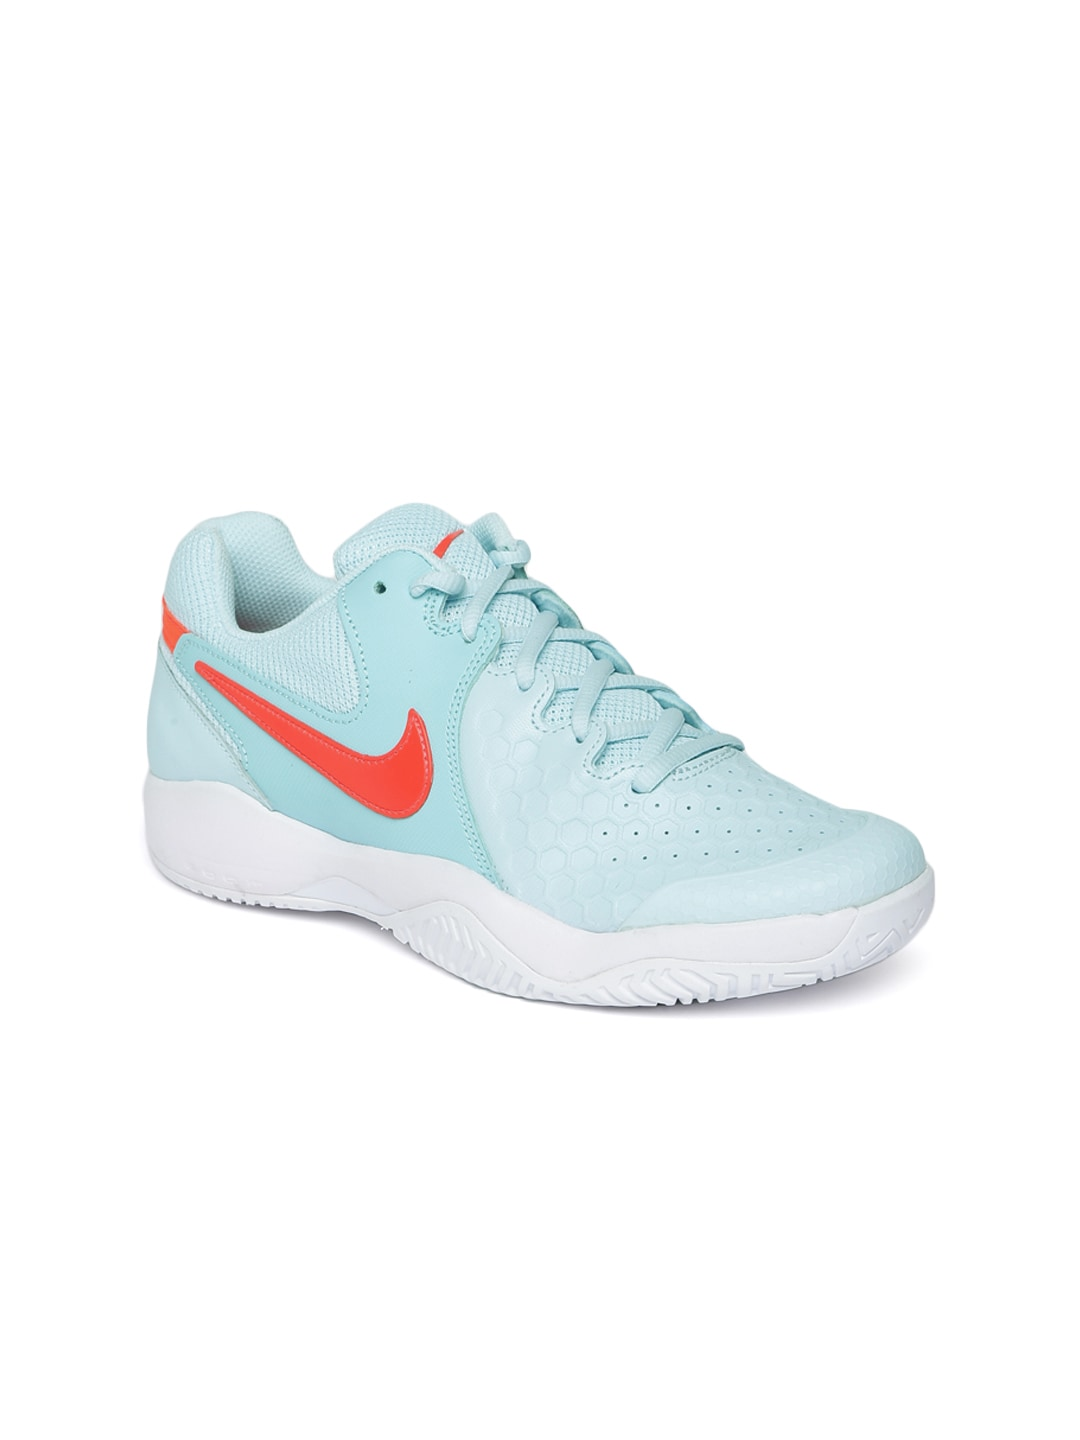 sale retailer 72150 4eeb0 Nike Tennis Shoes  Buy Nike Tennis Shoes Online in India at